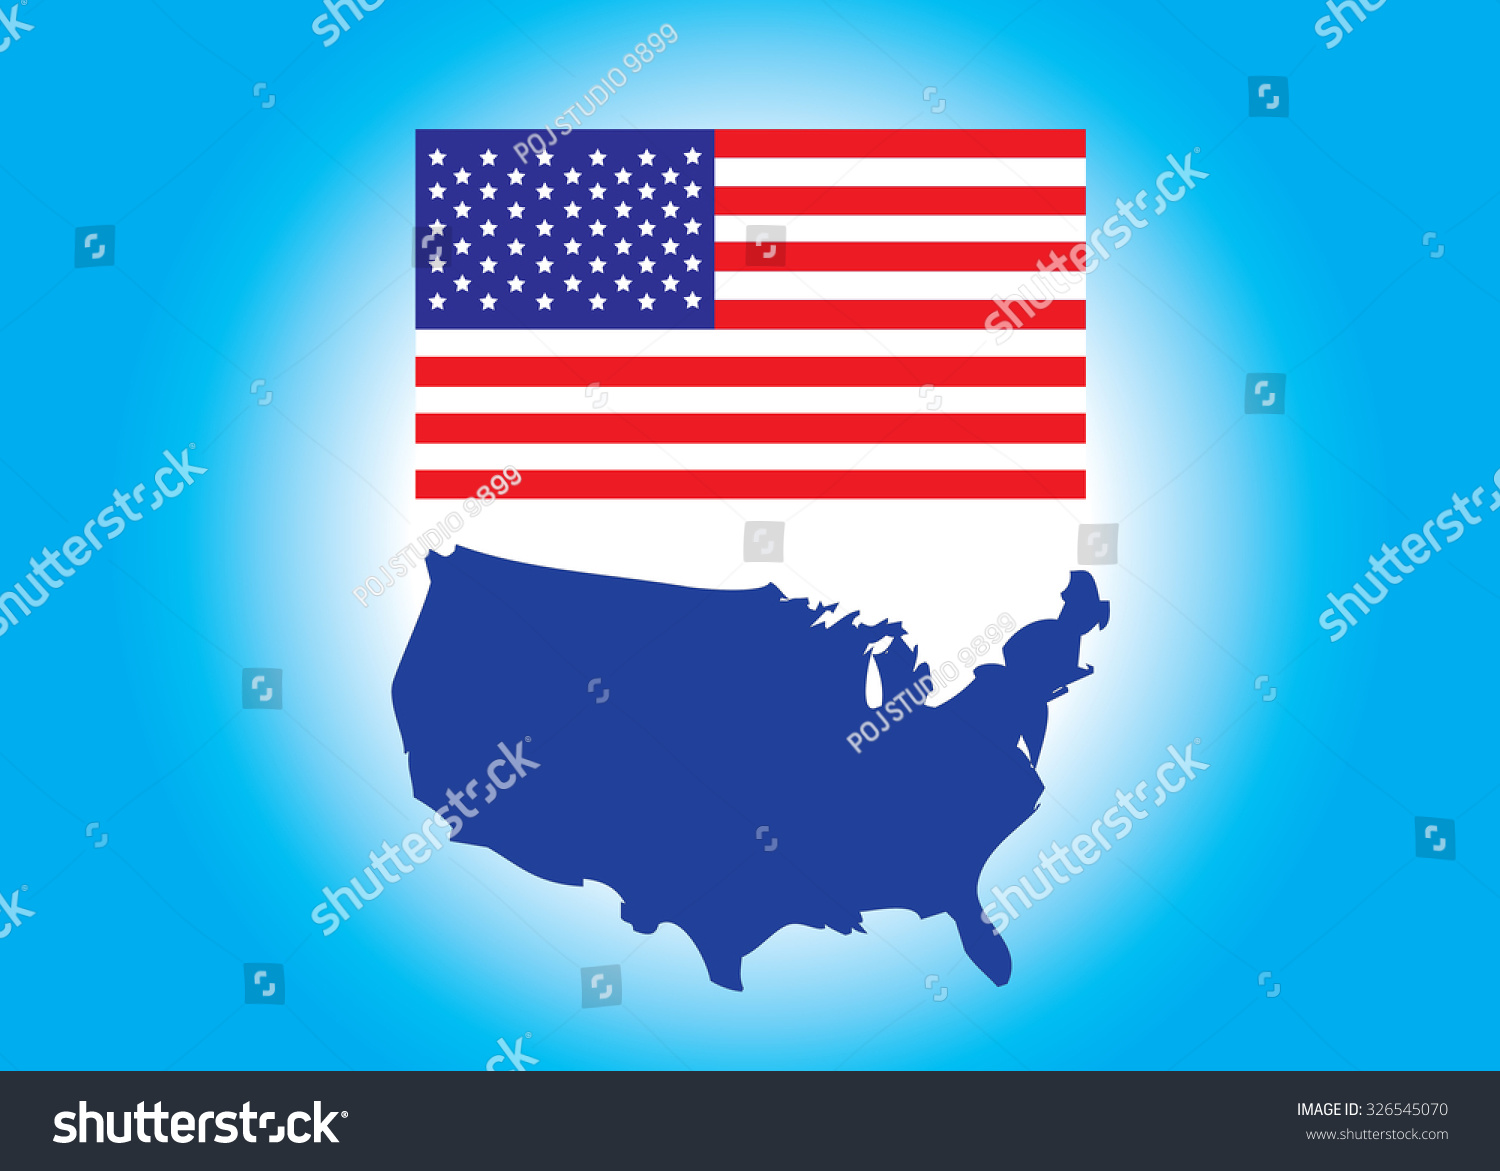 Diagram Collection Us Map Blue Red States Download More Maps Map Of Us Blue And